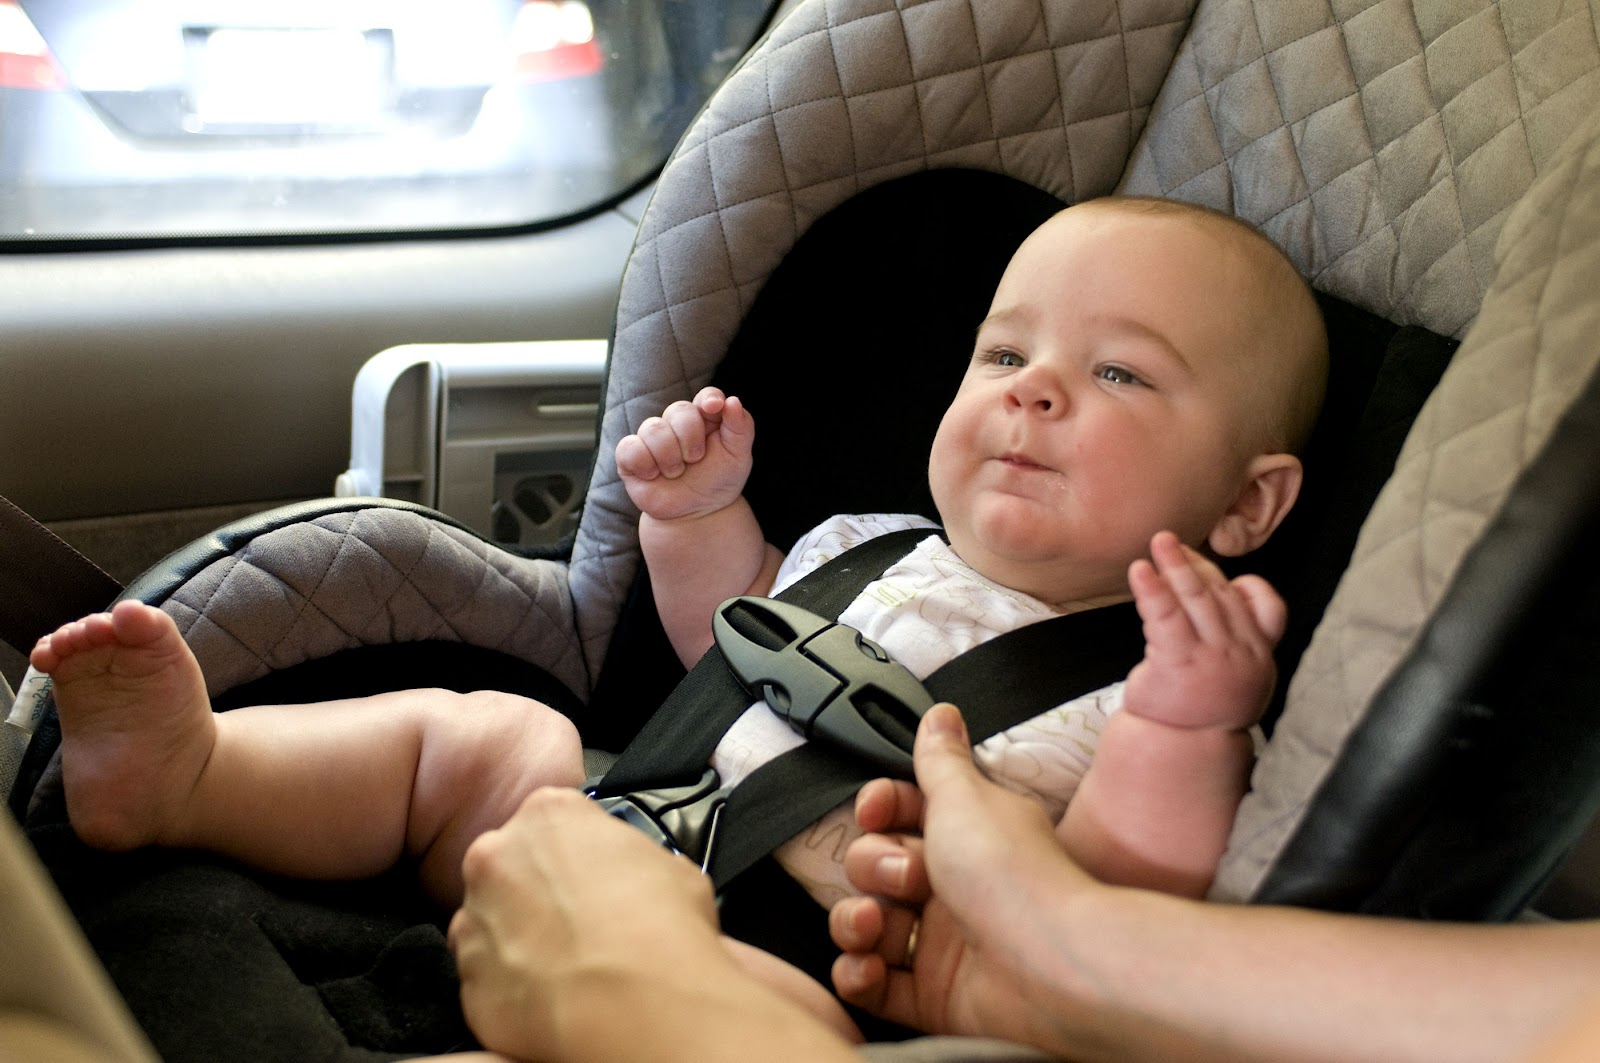 baby-in-a-back-seat-located-child-safety-seat.jpg